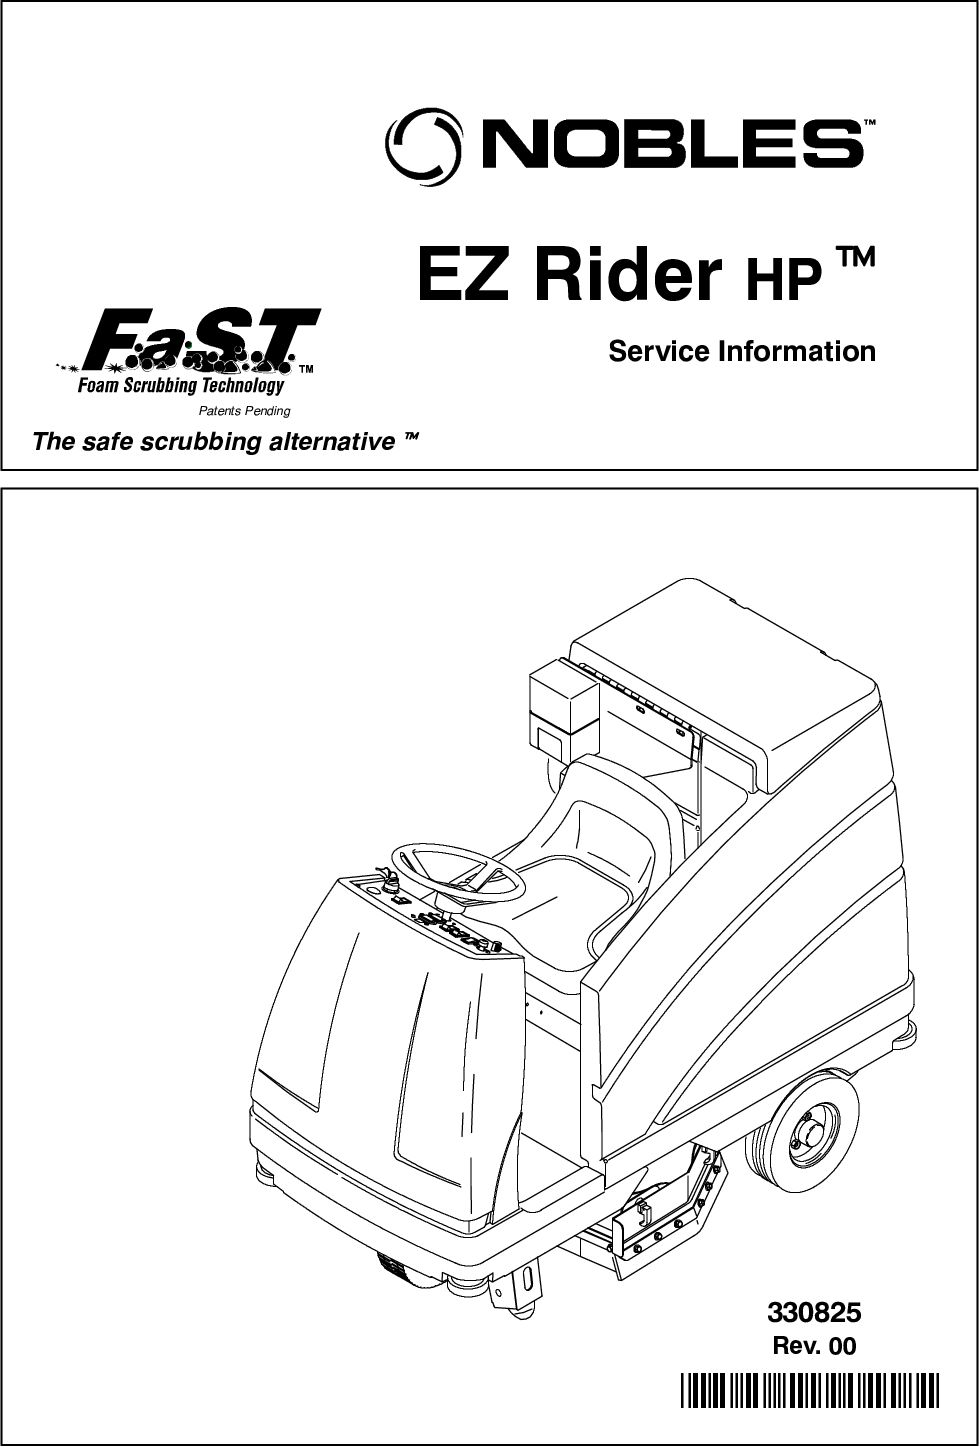 EZ Rider HP Service Manual Nobles floor scrubber